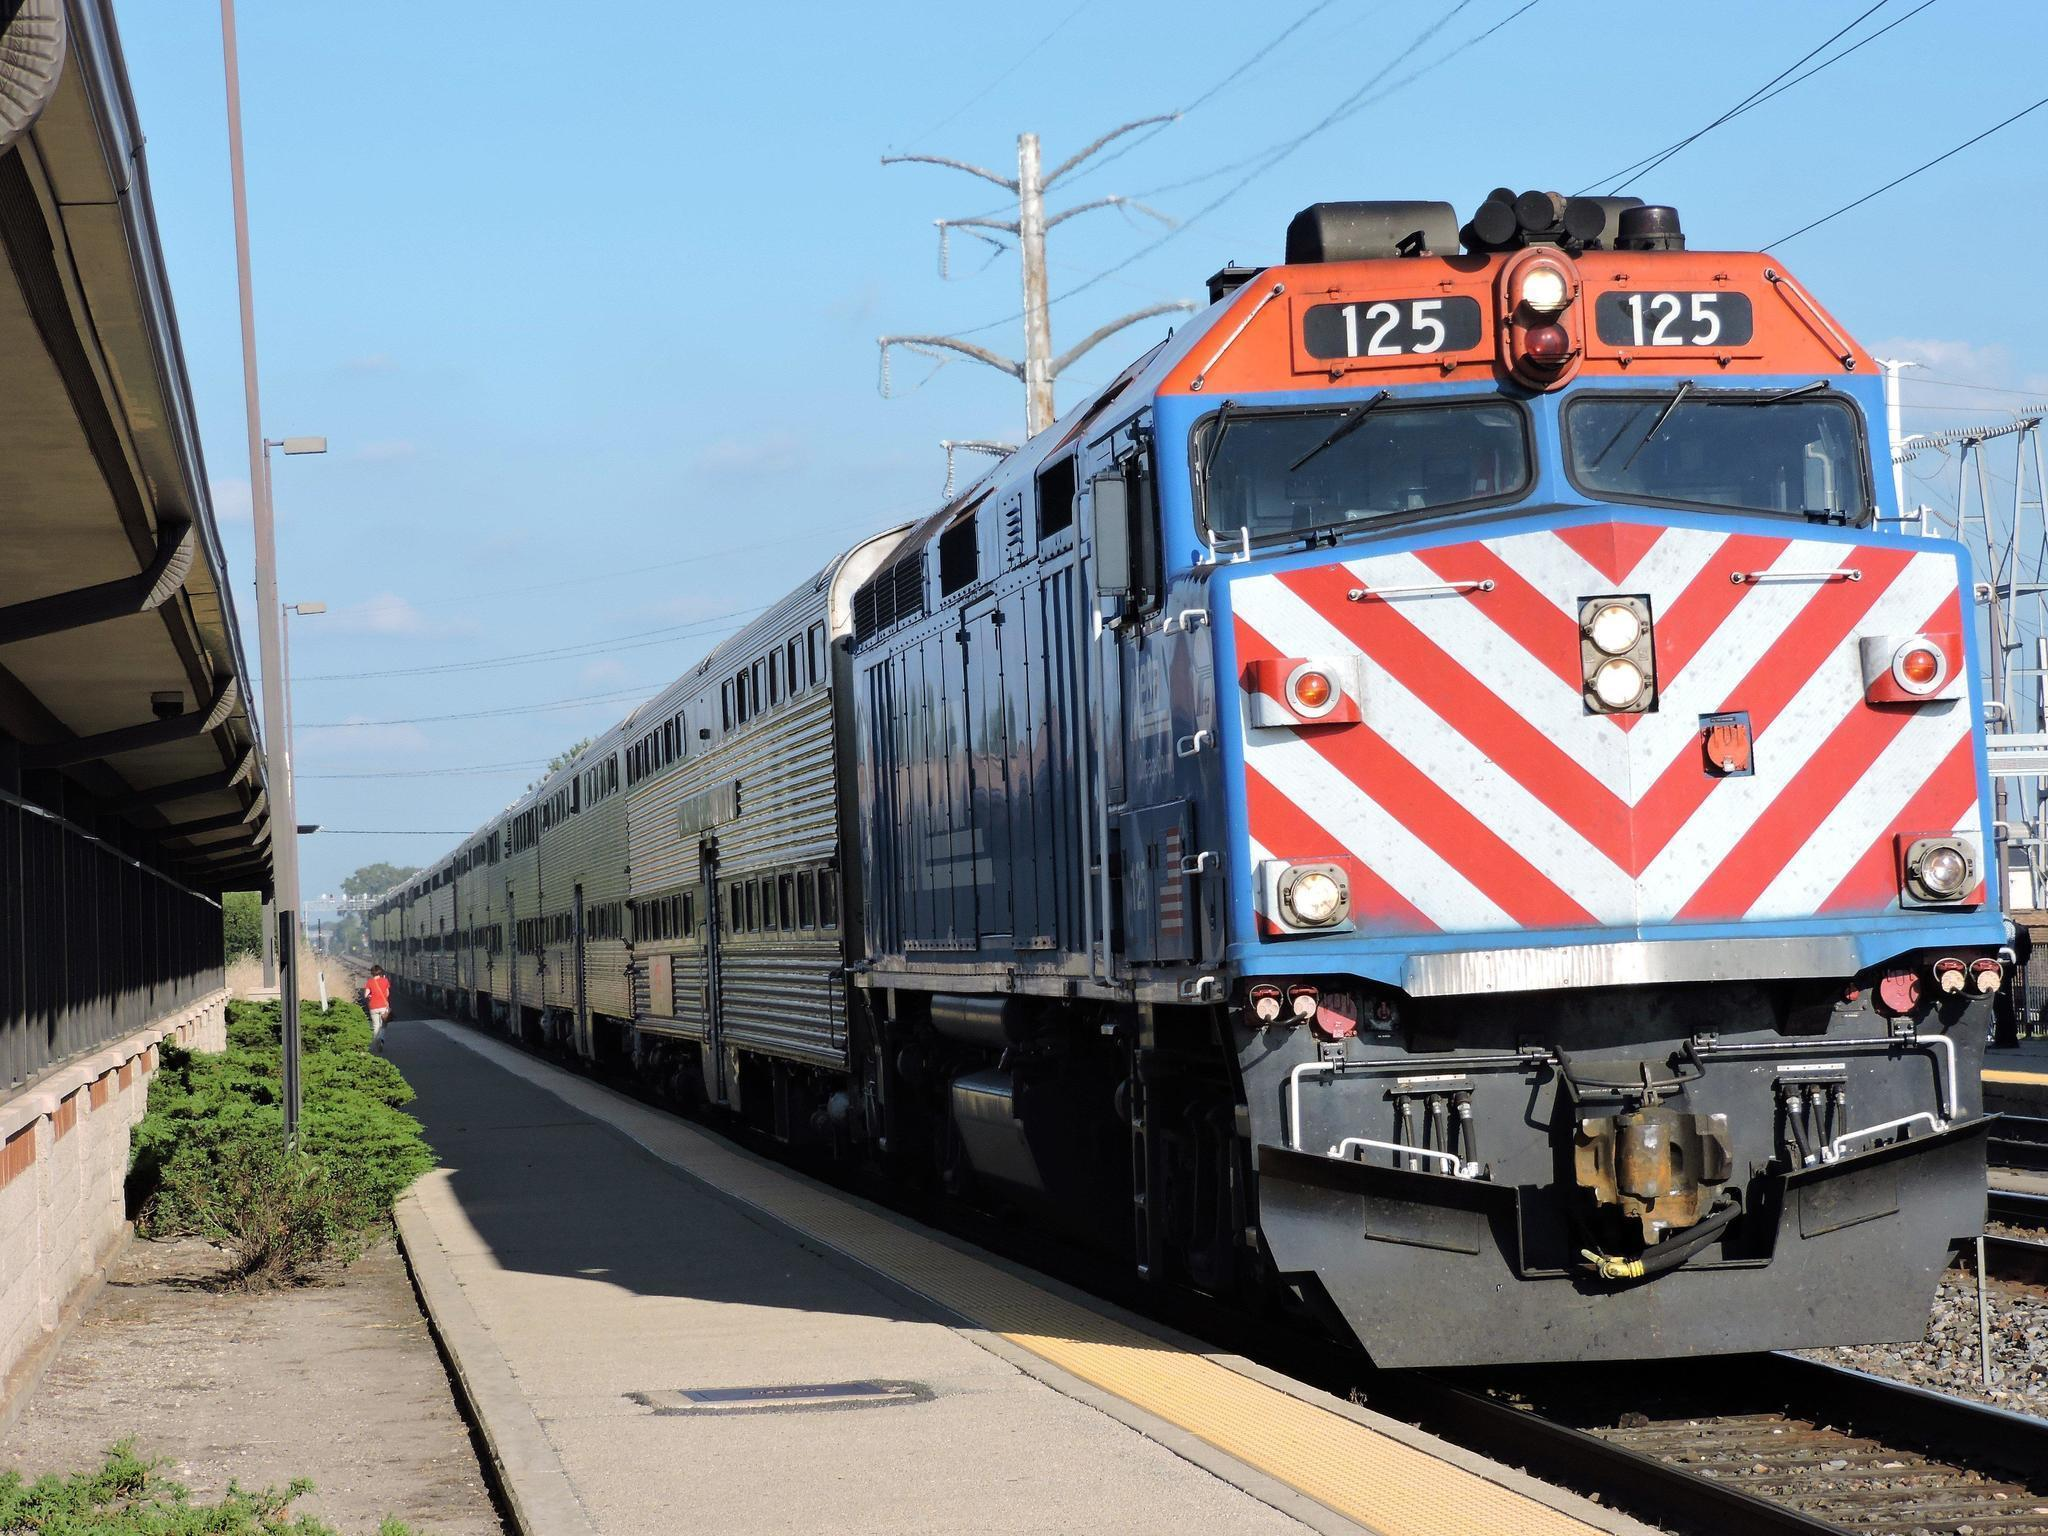 public input sought on switching metra schedule to make trains safer